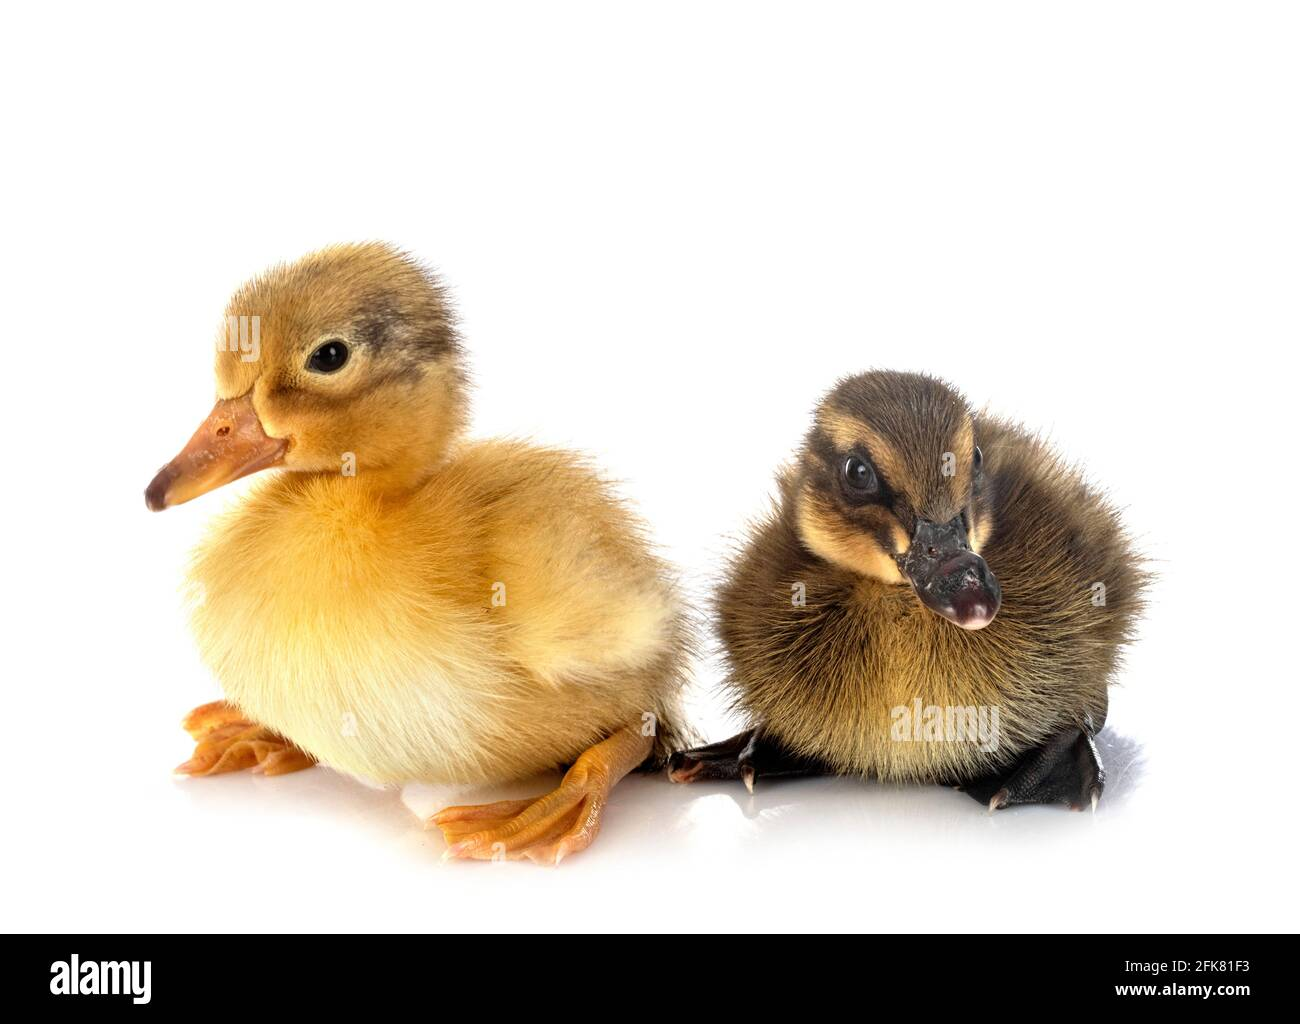 young ducklings in front of white background Stock Photo